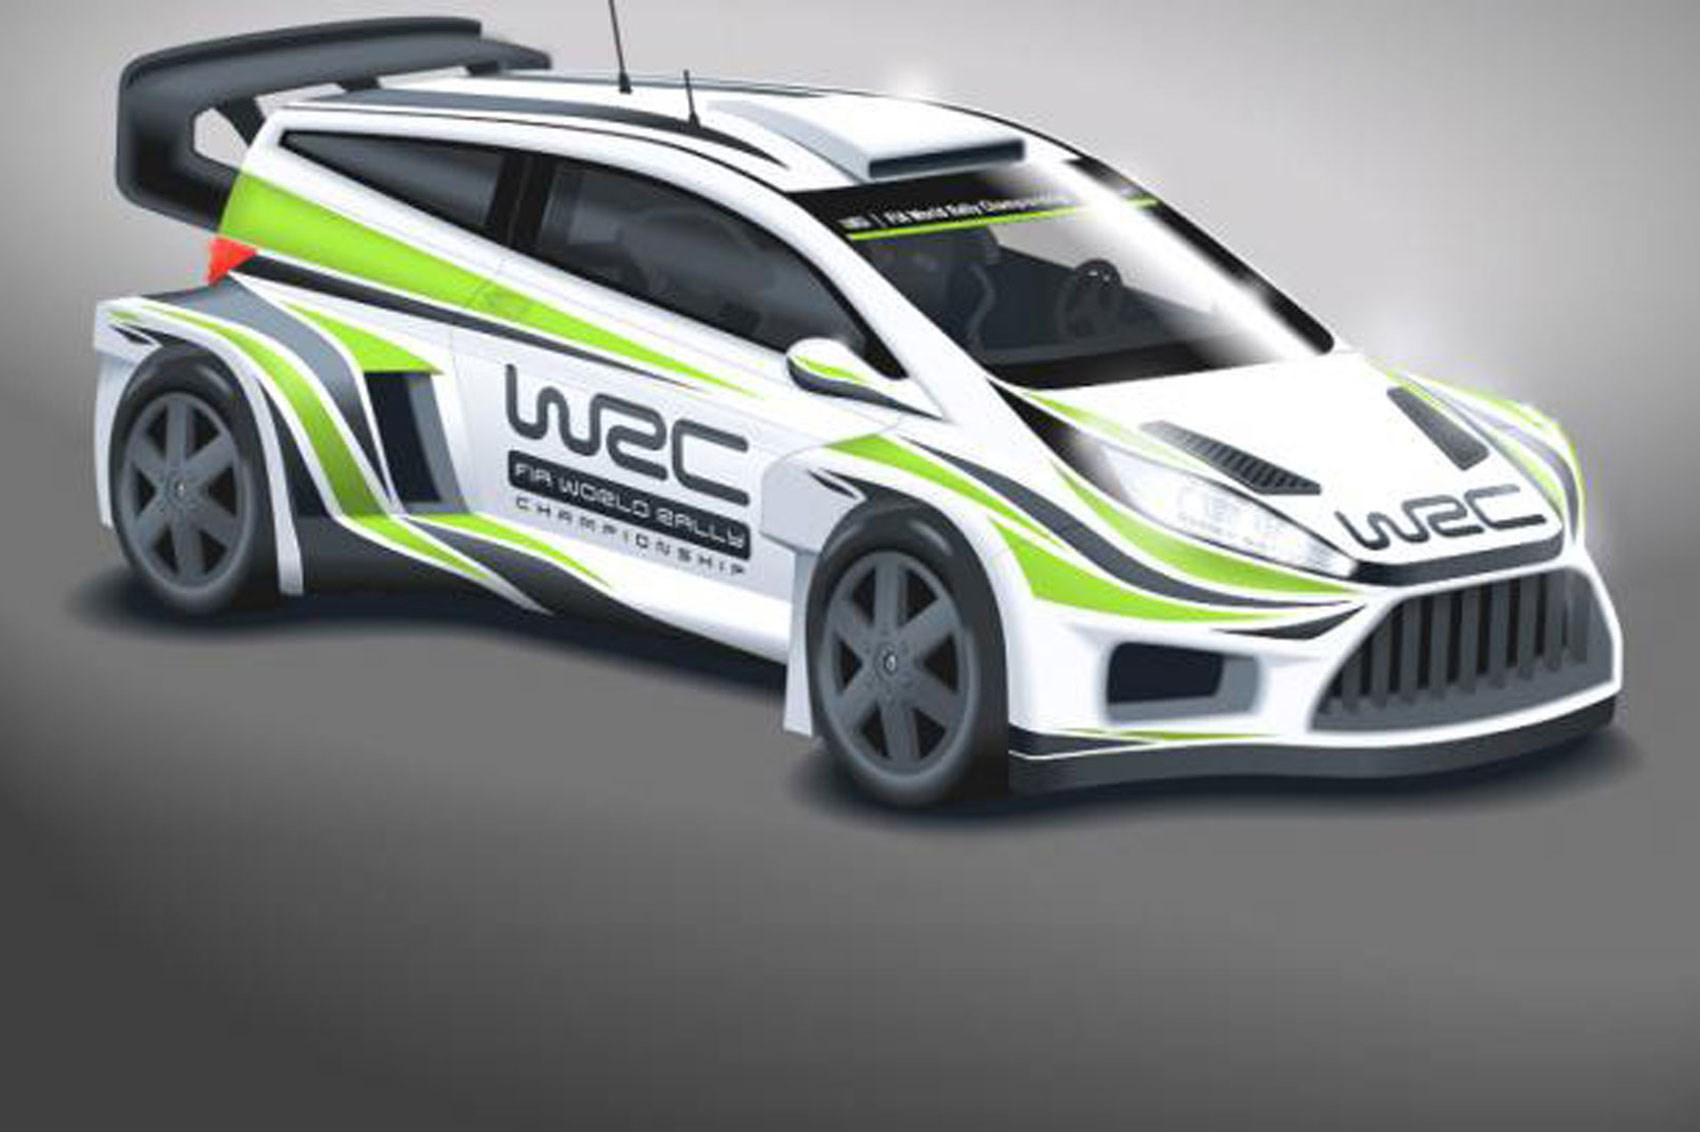 Ultrablogus  Pretty Wild New Look For Wrc Cars In  By Car Magazine With Heavenly Wrc Cars Will Get Wider Bodies Bigger Wings And More Power For  With Adorable Mitsubishi Gt Interior Parts Also Rd Gen Camaro Custom Interior In Addition Mgb Gt Interior And  Monte Carlo Interior As Well As  Ford Interior Additionally  Ford Ranger Interior From Carmagazinecouk With Ultrablogus  Heavenly Wild New Look For Wrc Cars In  By Car Magazine With Adorable Wrc Cars Will Get Wider Bodies Bigger Wings And More Power For  And Pretty Mitsubishi Gt Interior Parts Also Rd Gen Camaro Custom Interior In Addition Mgb Gt Interior From Carmagazinecouk